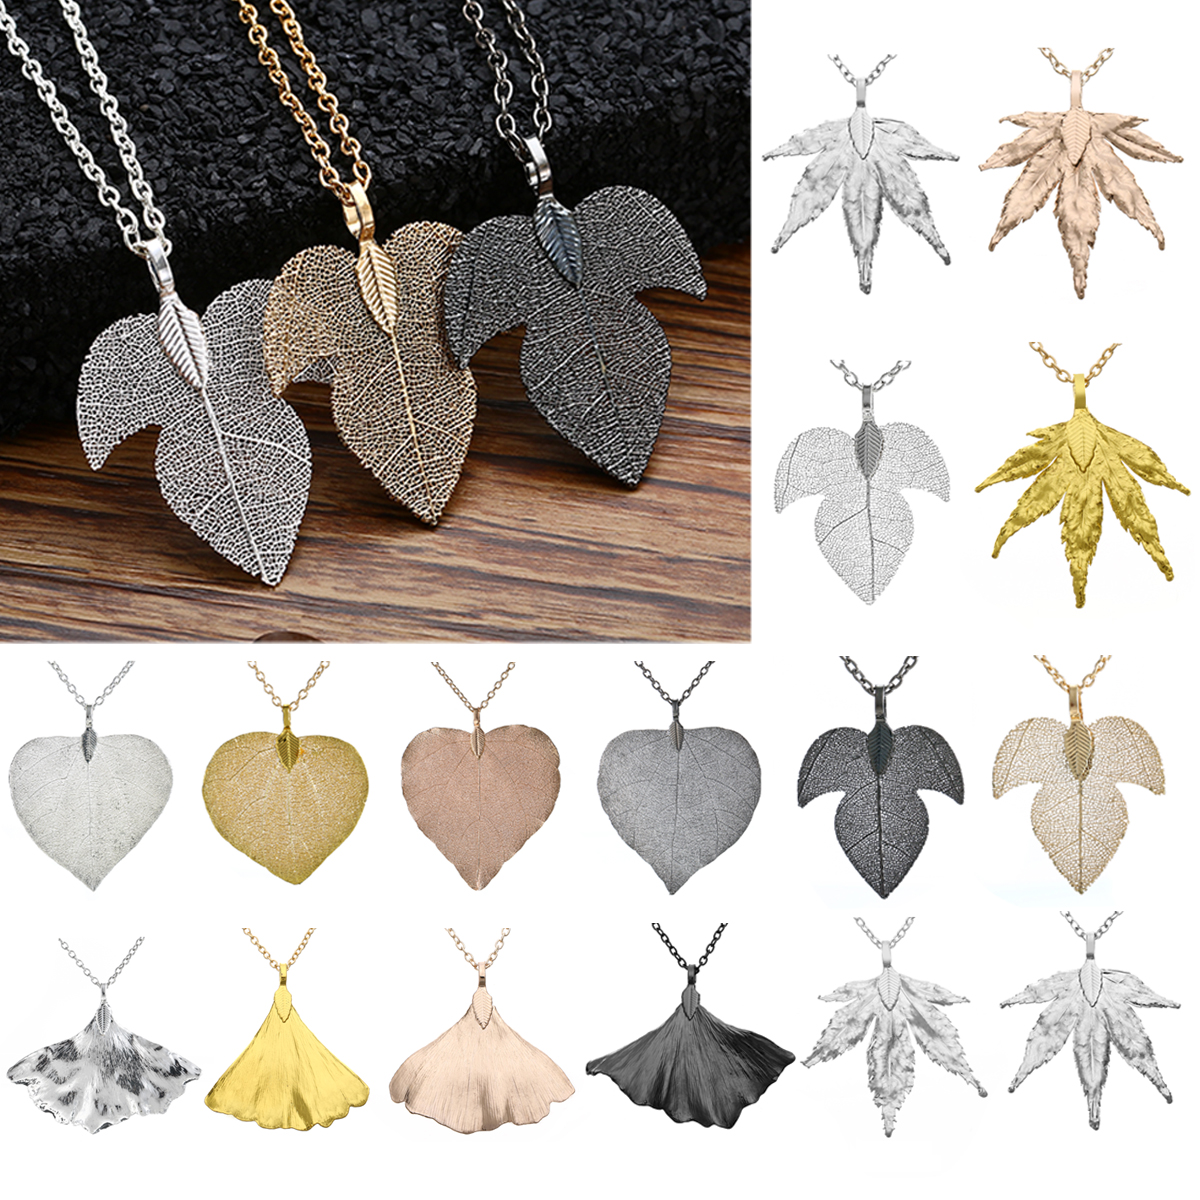 Shellhard Boho Natural Leaf Pendant Necklaces Vintage Ginkgo Maple Leaf Long Sweater Chain Necklace For Bohemian Women Jewelry